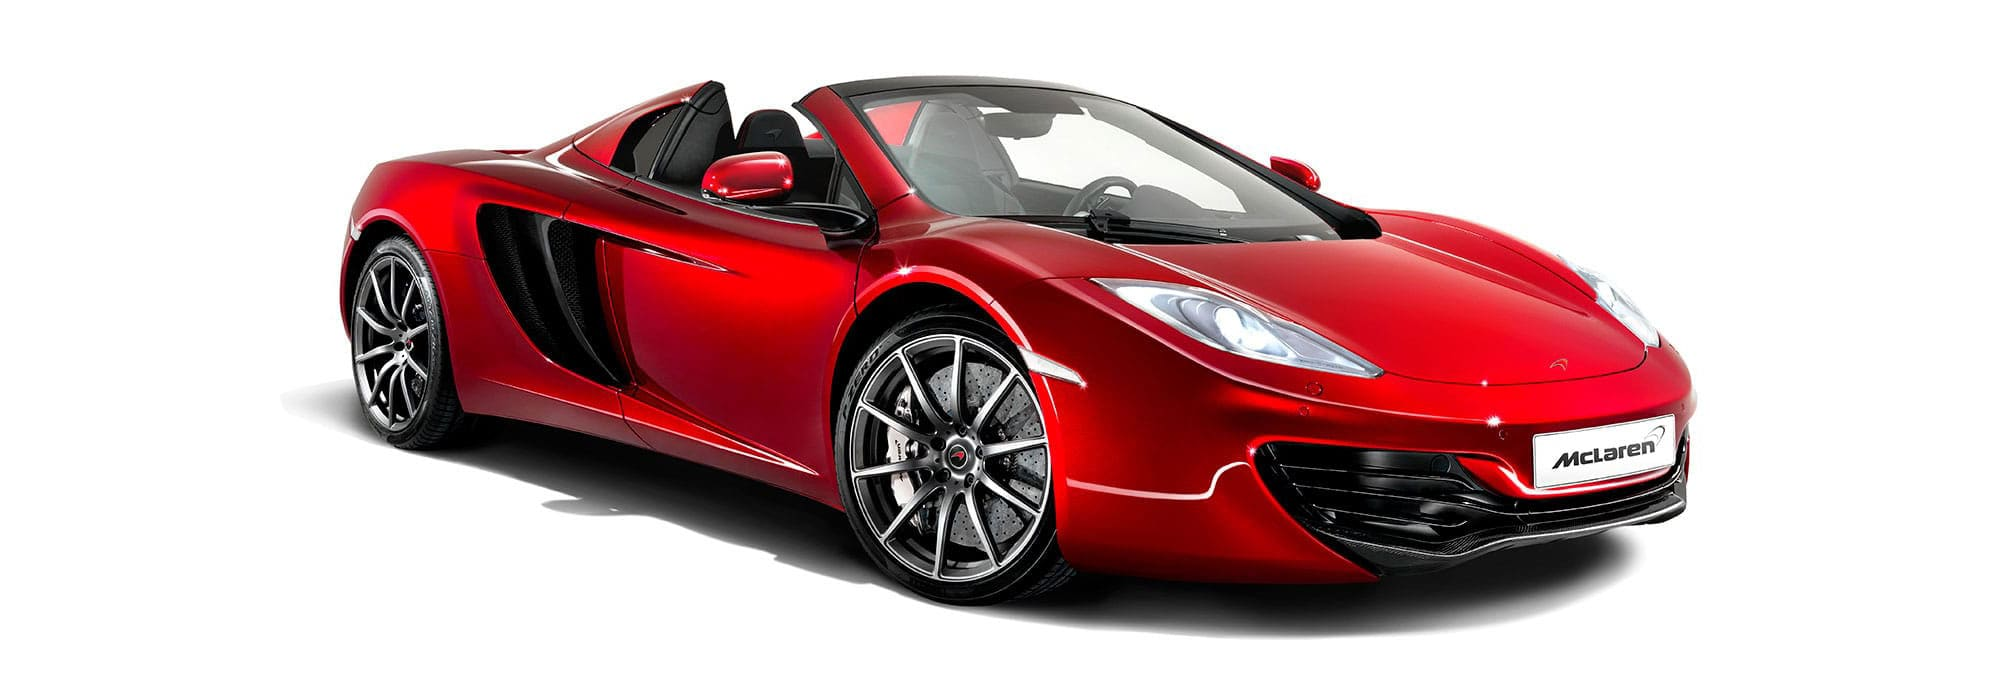 mclaren-12C-spider-red-tampa-front-3qtr-studio-hero-dimmitt